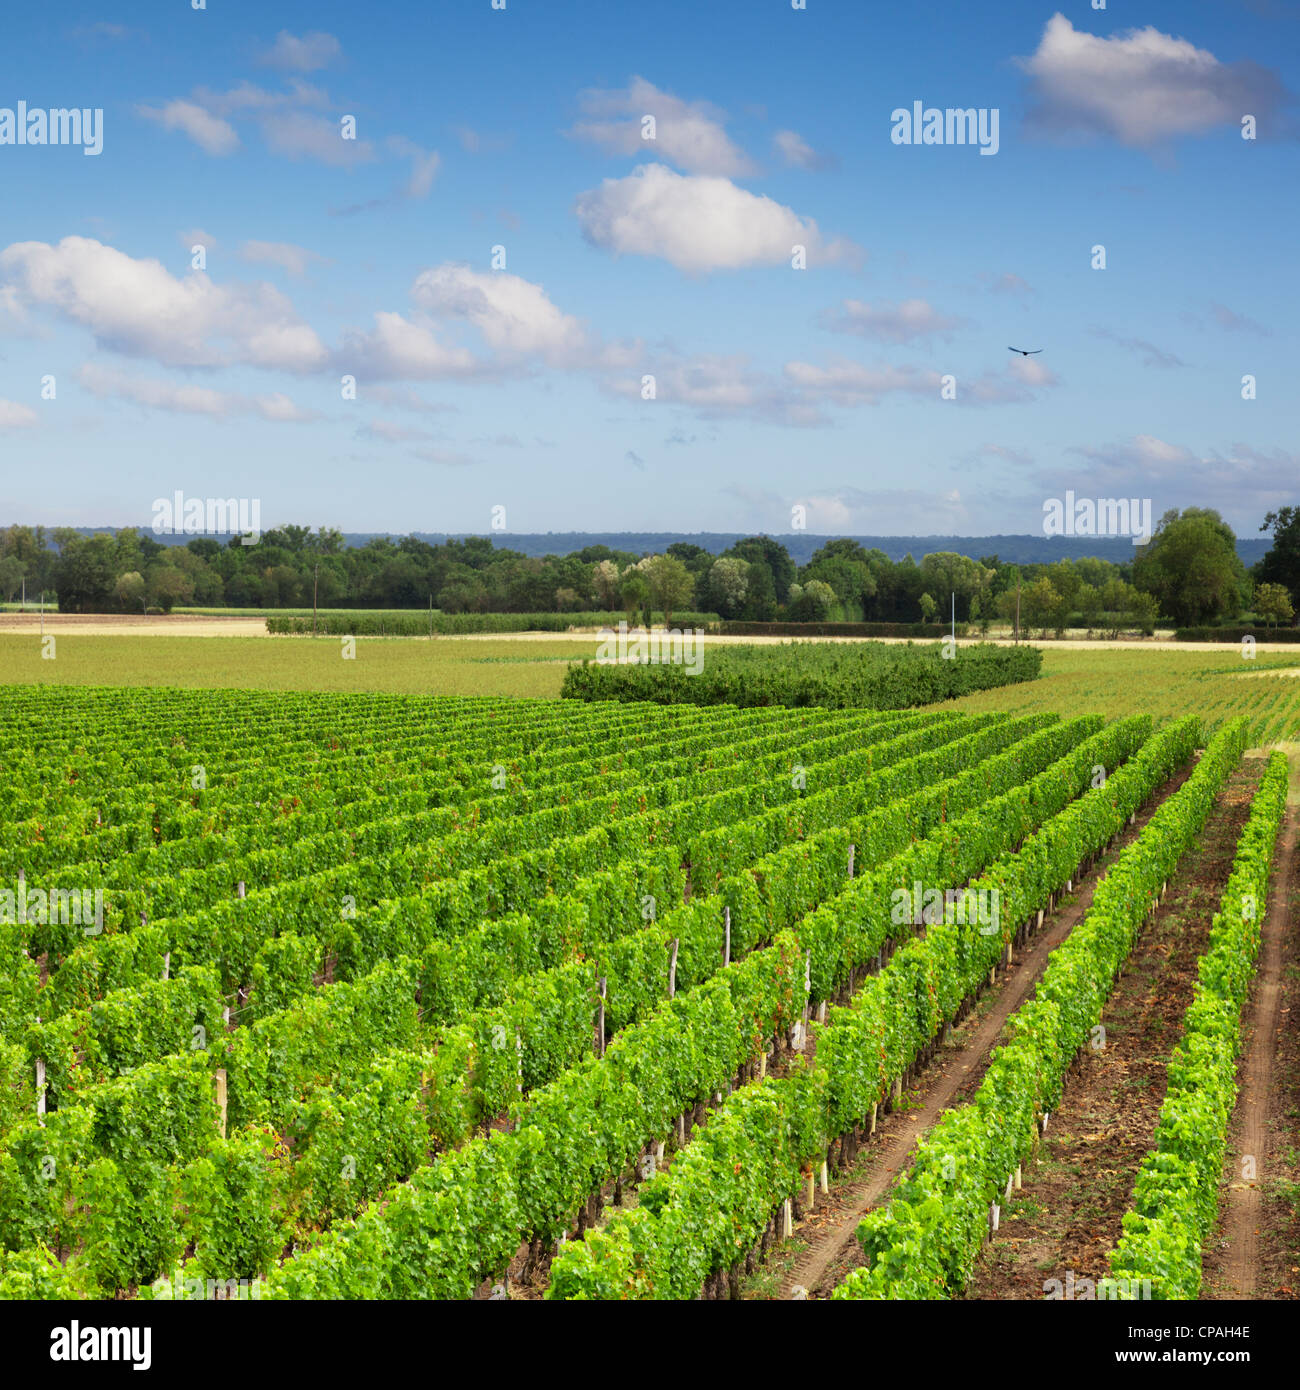 A vineyard in the Loire Valley, France. - Stock Image